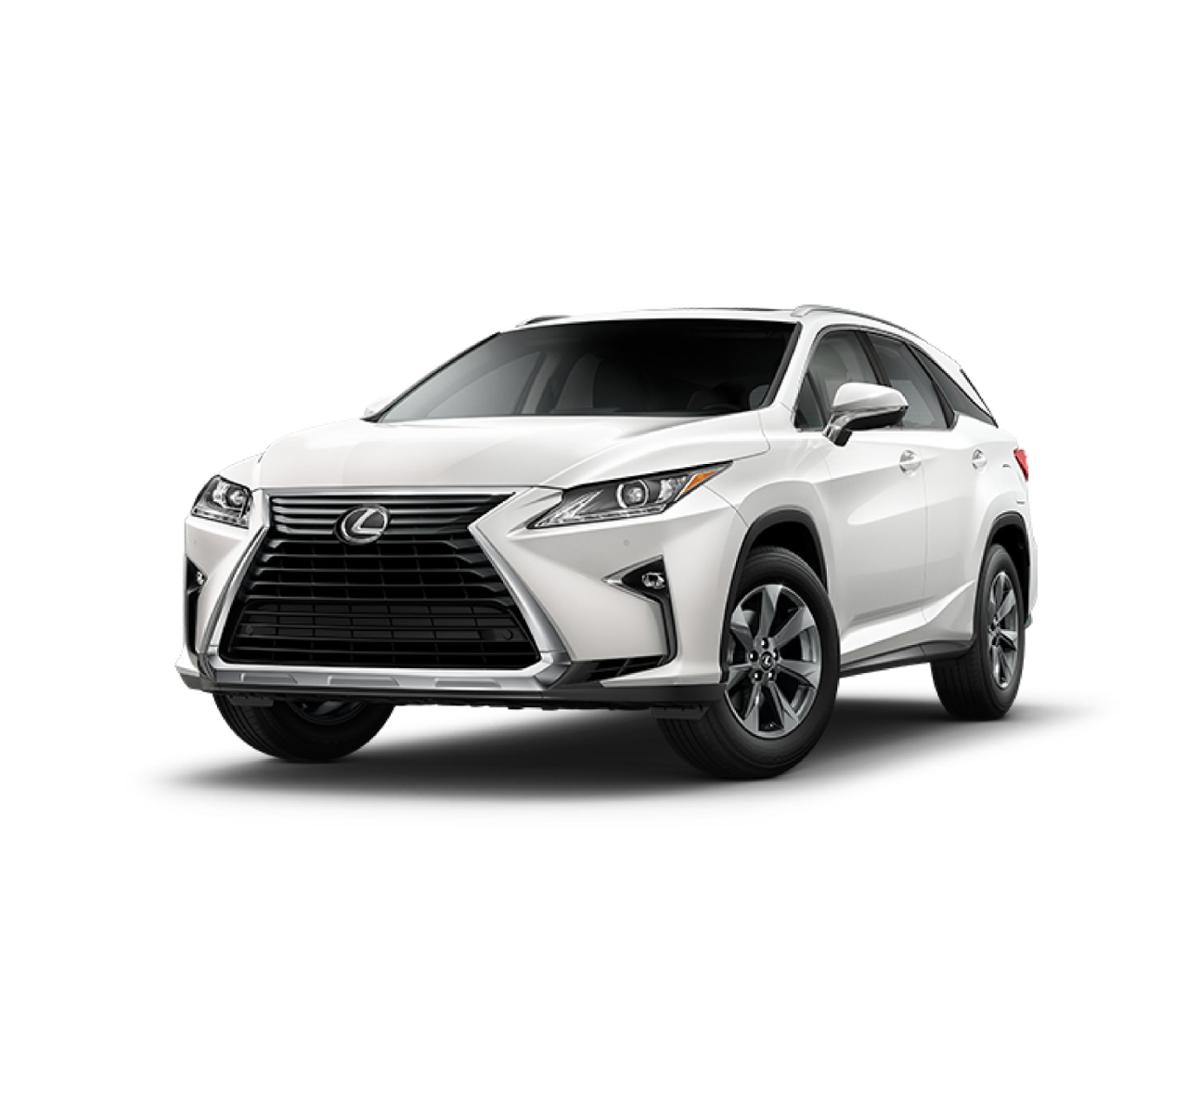 2019 Lexus RX 350L Vehicle Photo in Larchmont, NY 10538